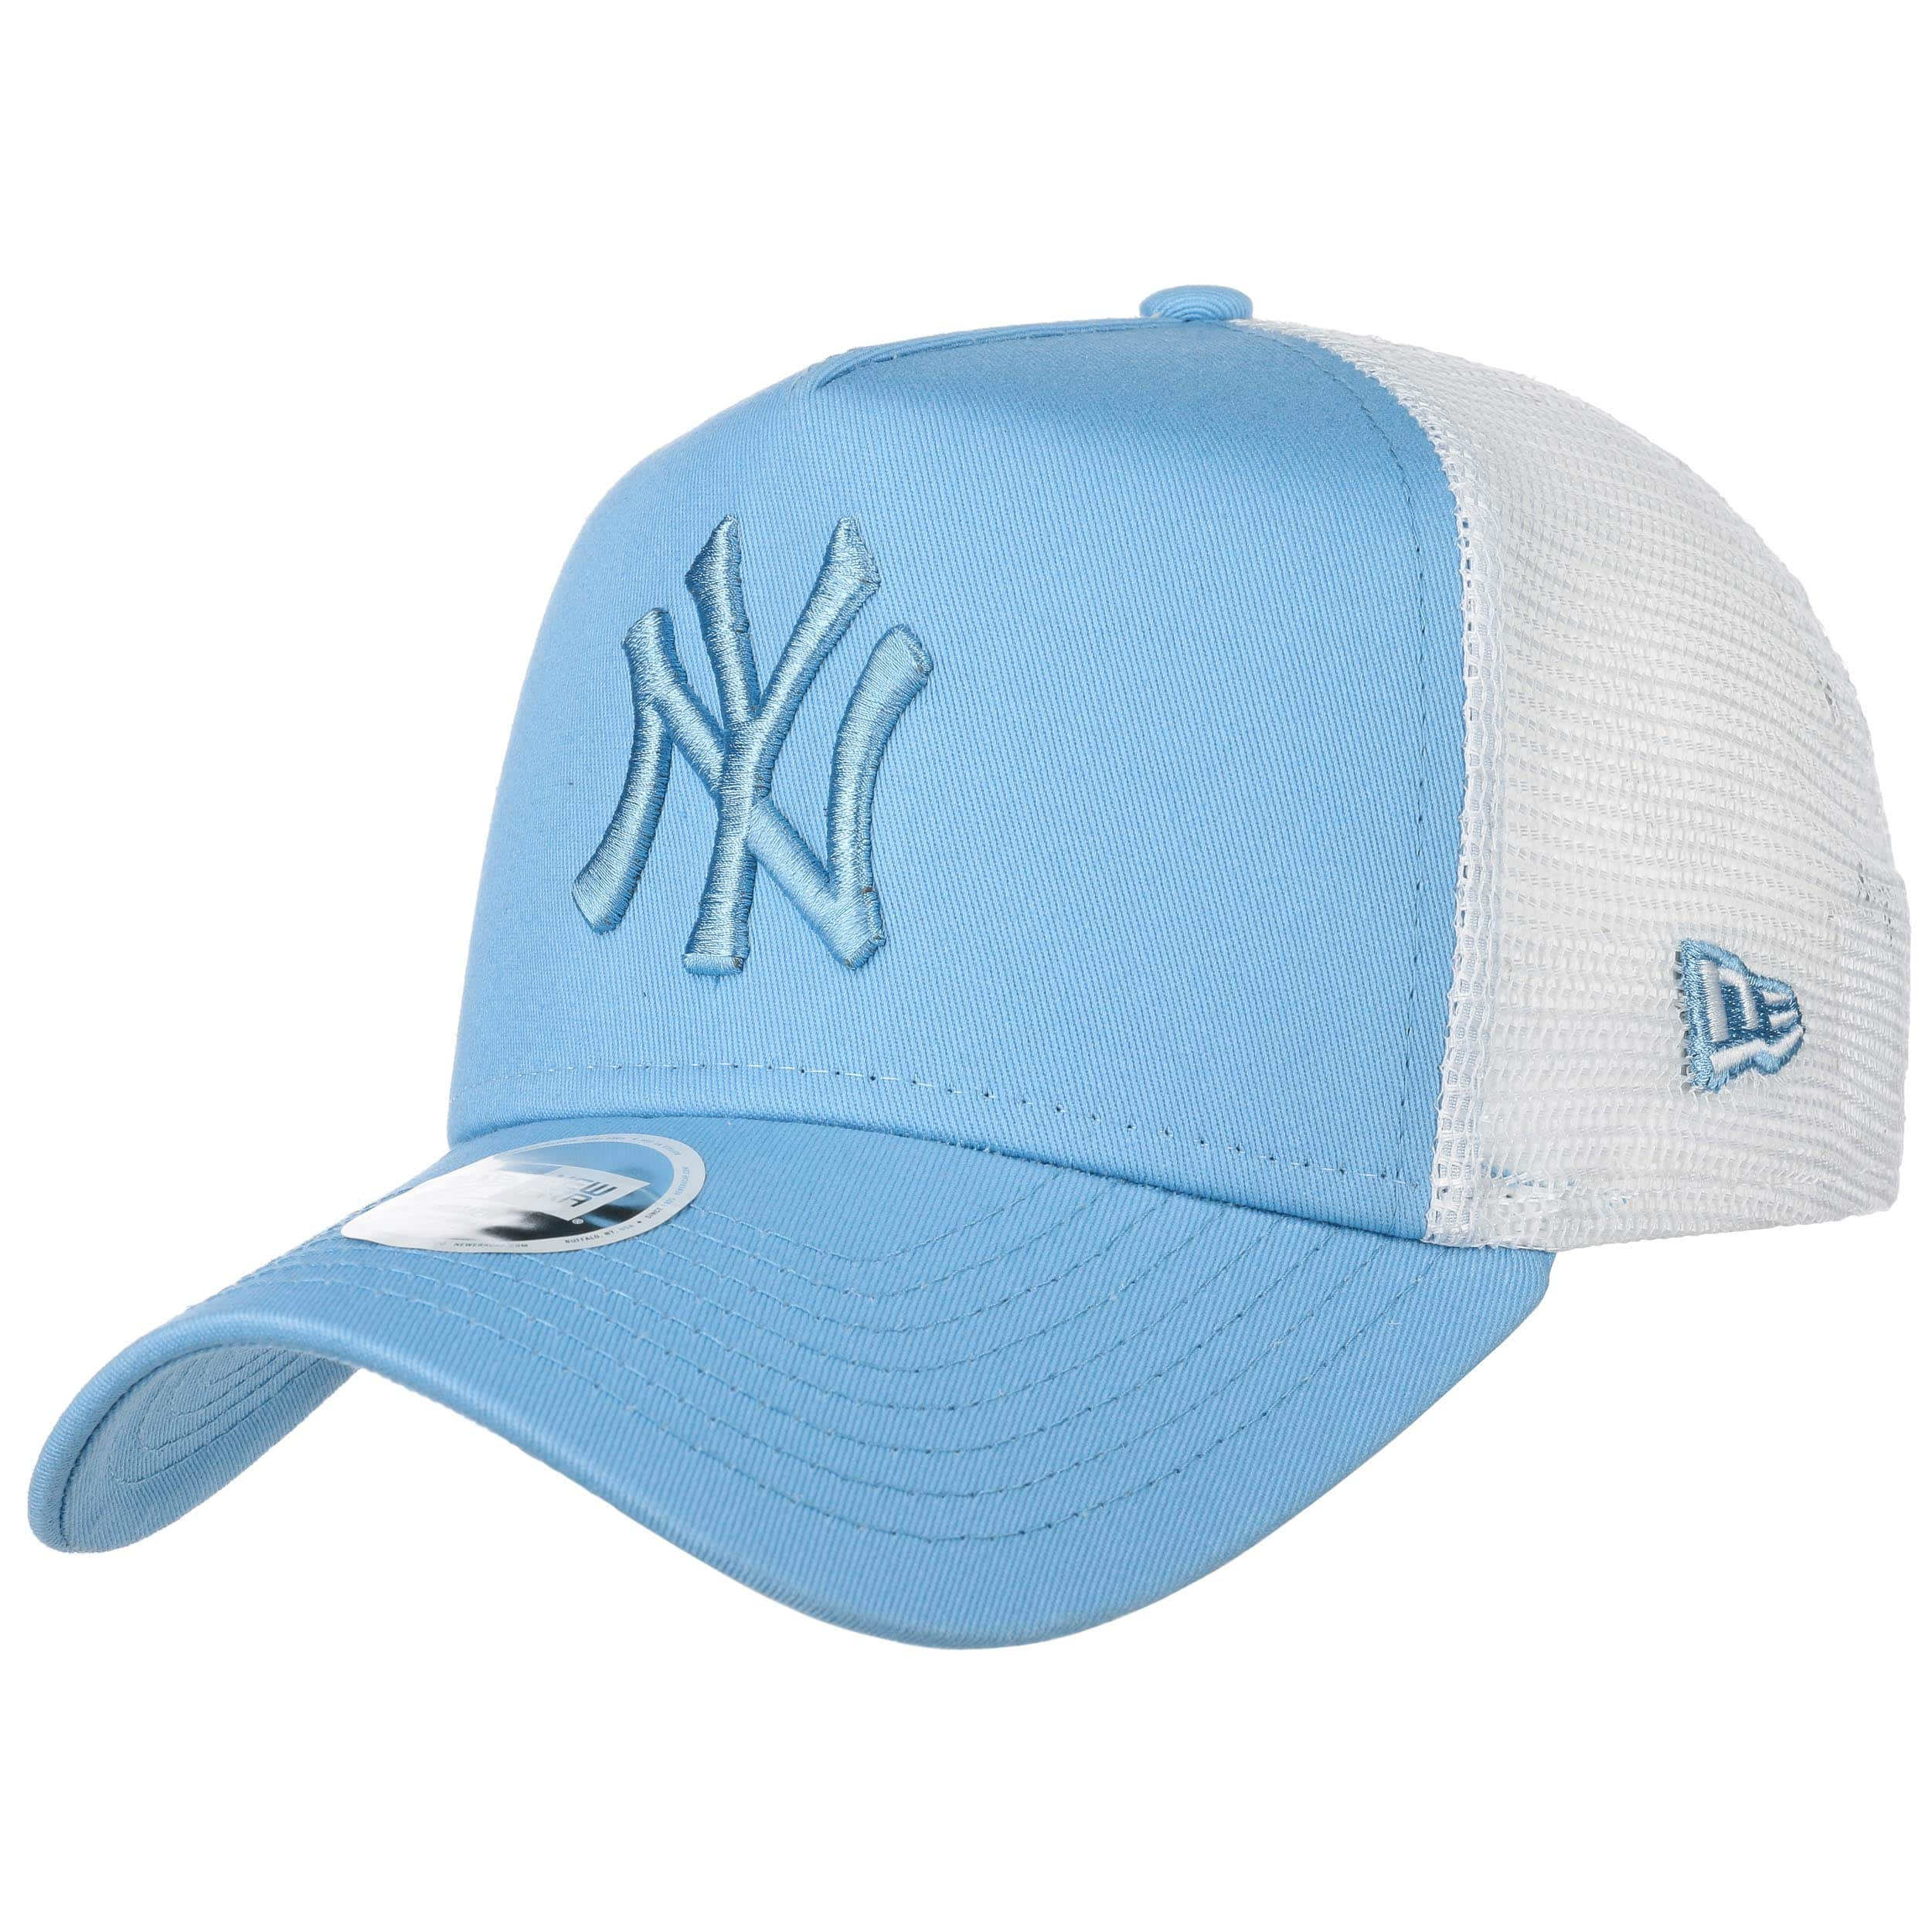 f2216ba446a13 ... Casquette Trucker Ess Yankees MLB by New Era - bleu clair 7